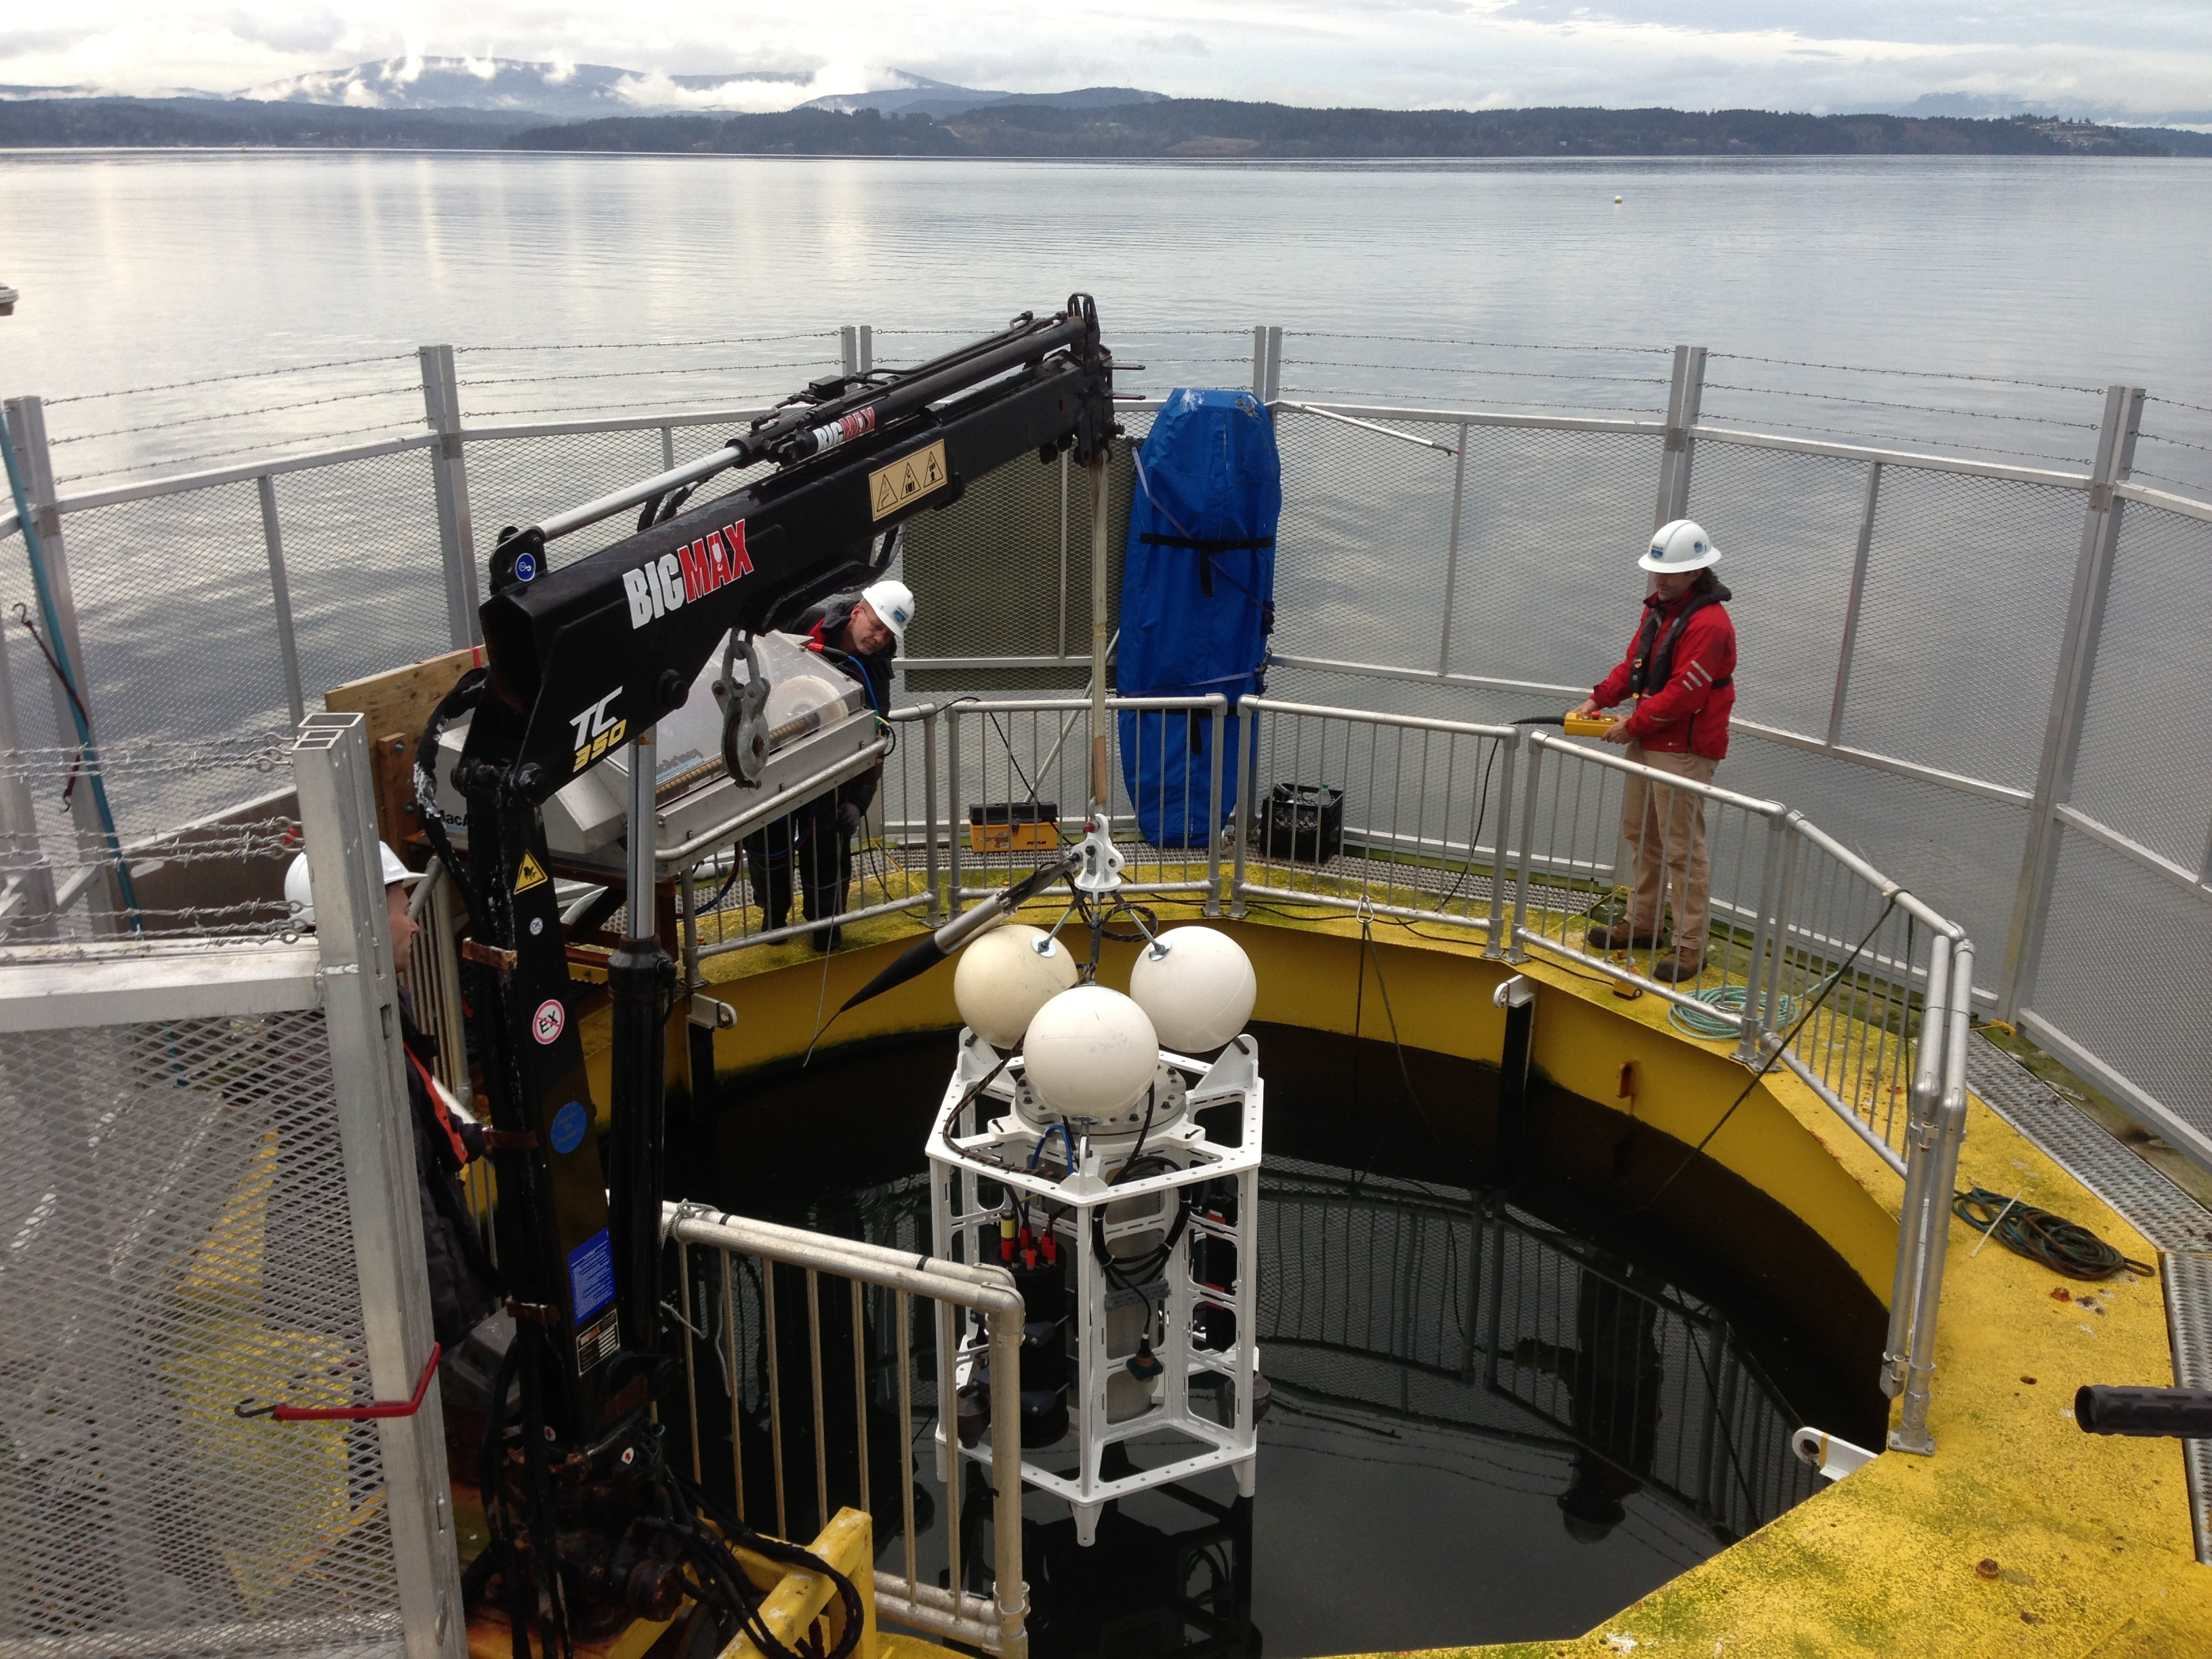 VENUS Buoy Profiling System | Victoria and Region Community ... on gorilla map, gypsy map, global topographical map, ganymede map, uranus map, neptune map, milky way map, mercury map, space colonization map, saturn map, earth map, io map, mars map, ceres map, jupiter map, brazilia map, pleiades map, pluto map, iran map, moon map,